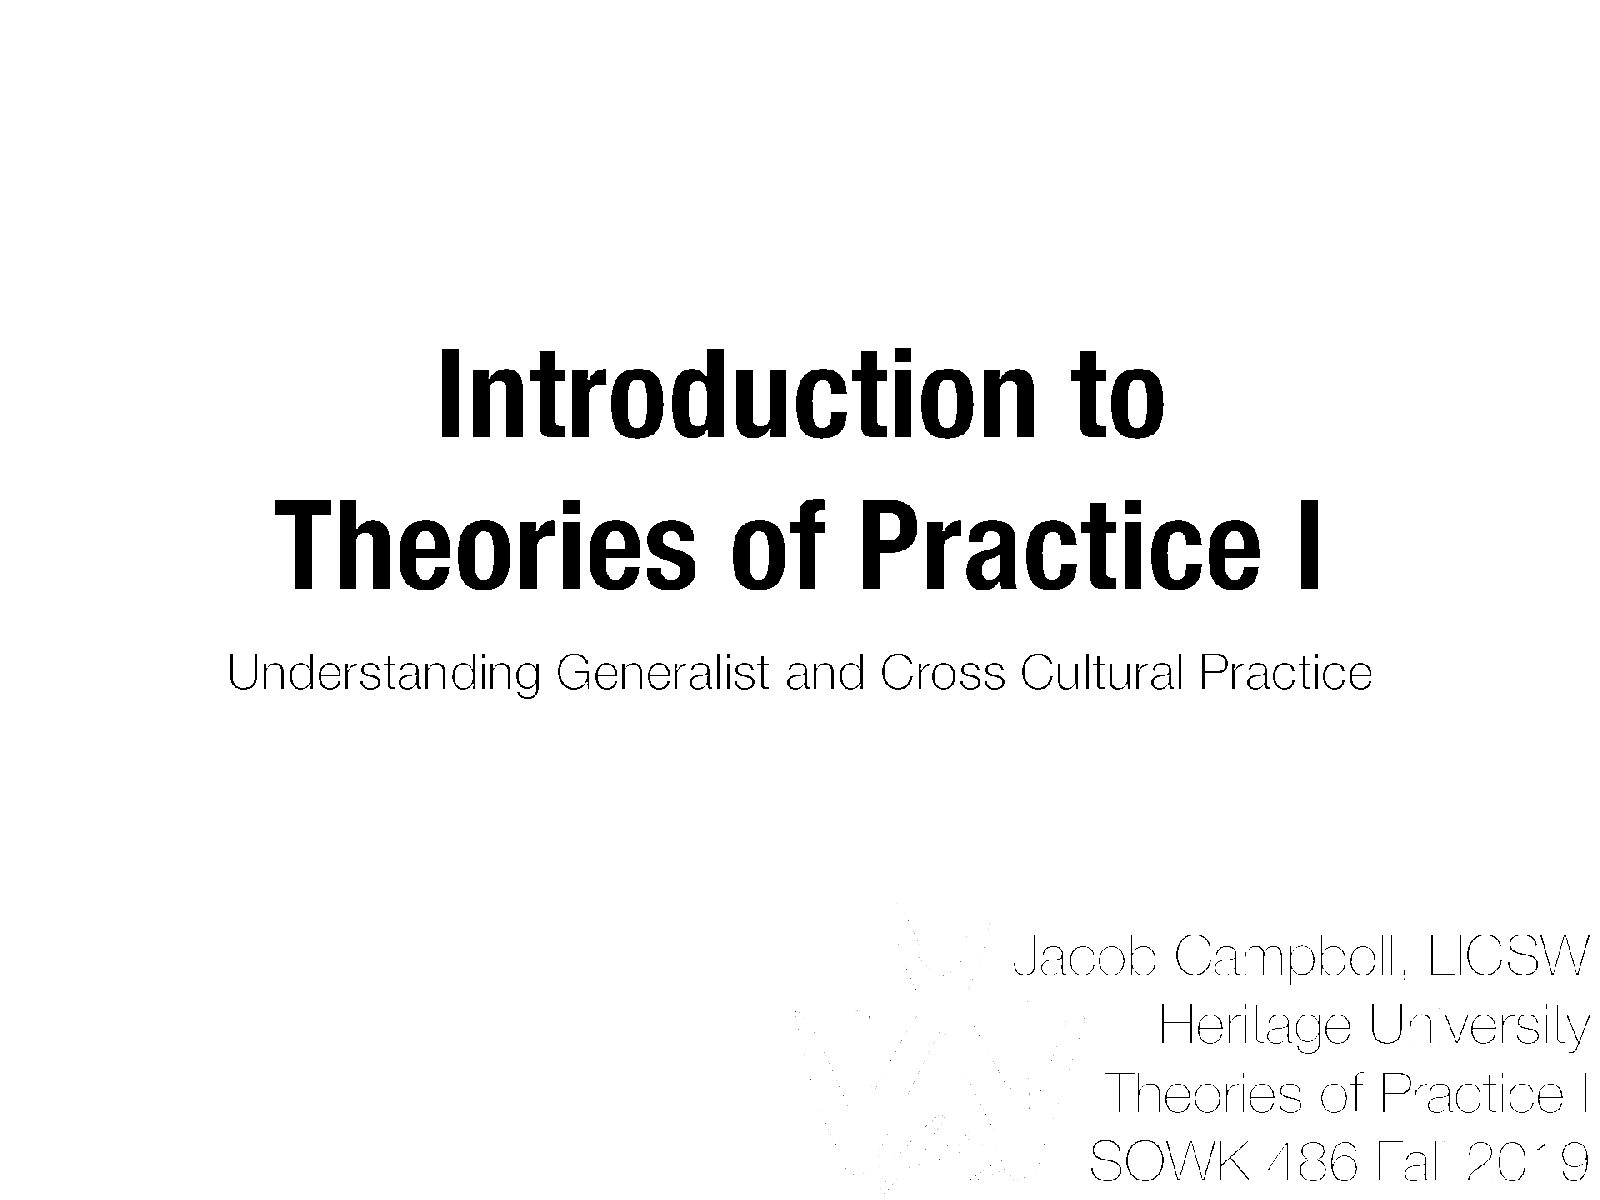 Week 01 - Theories of Practice I - Course Introduction